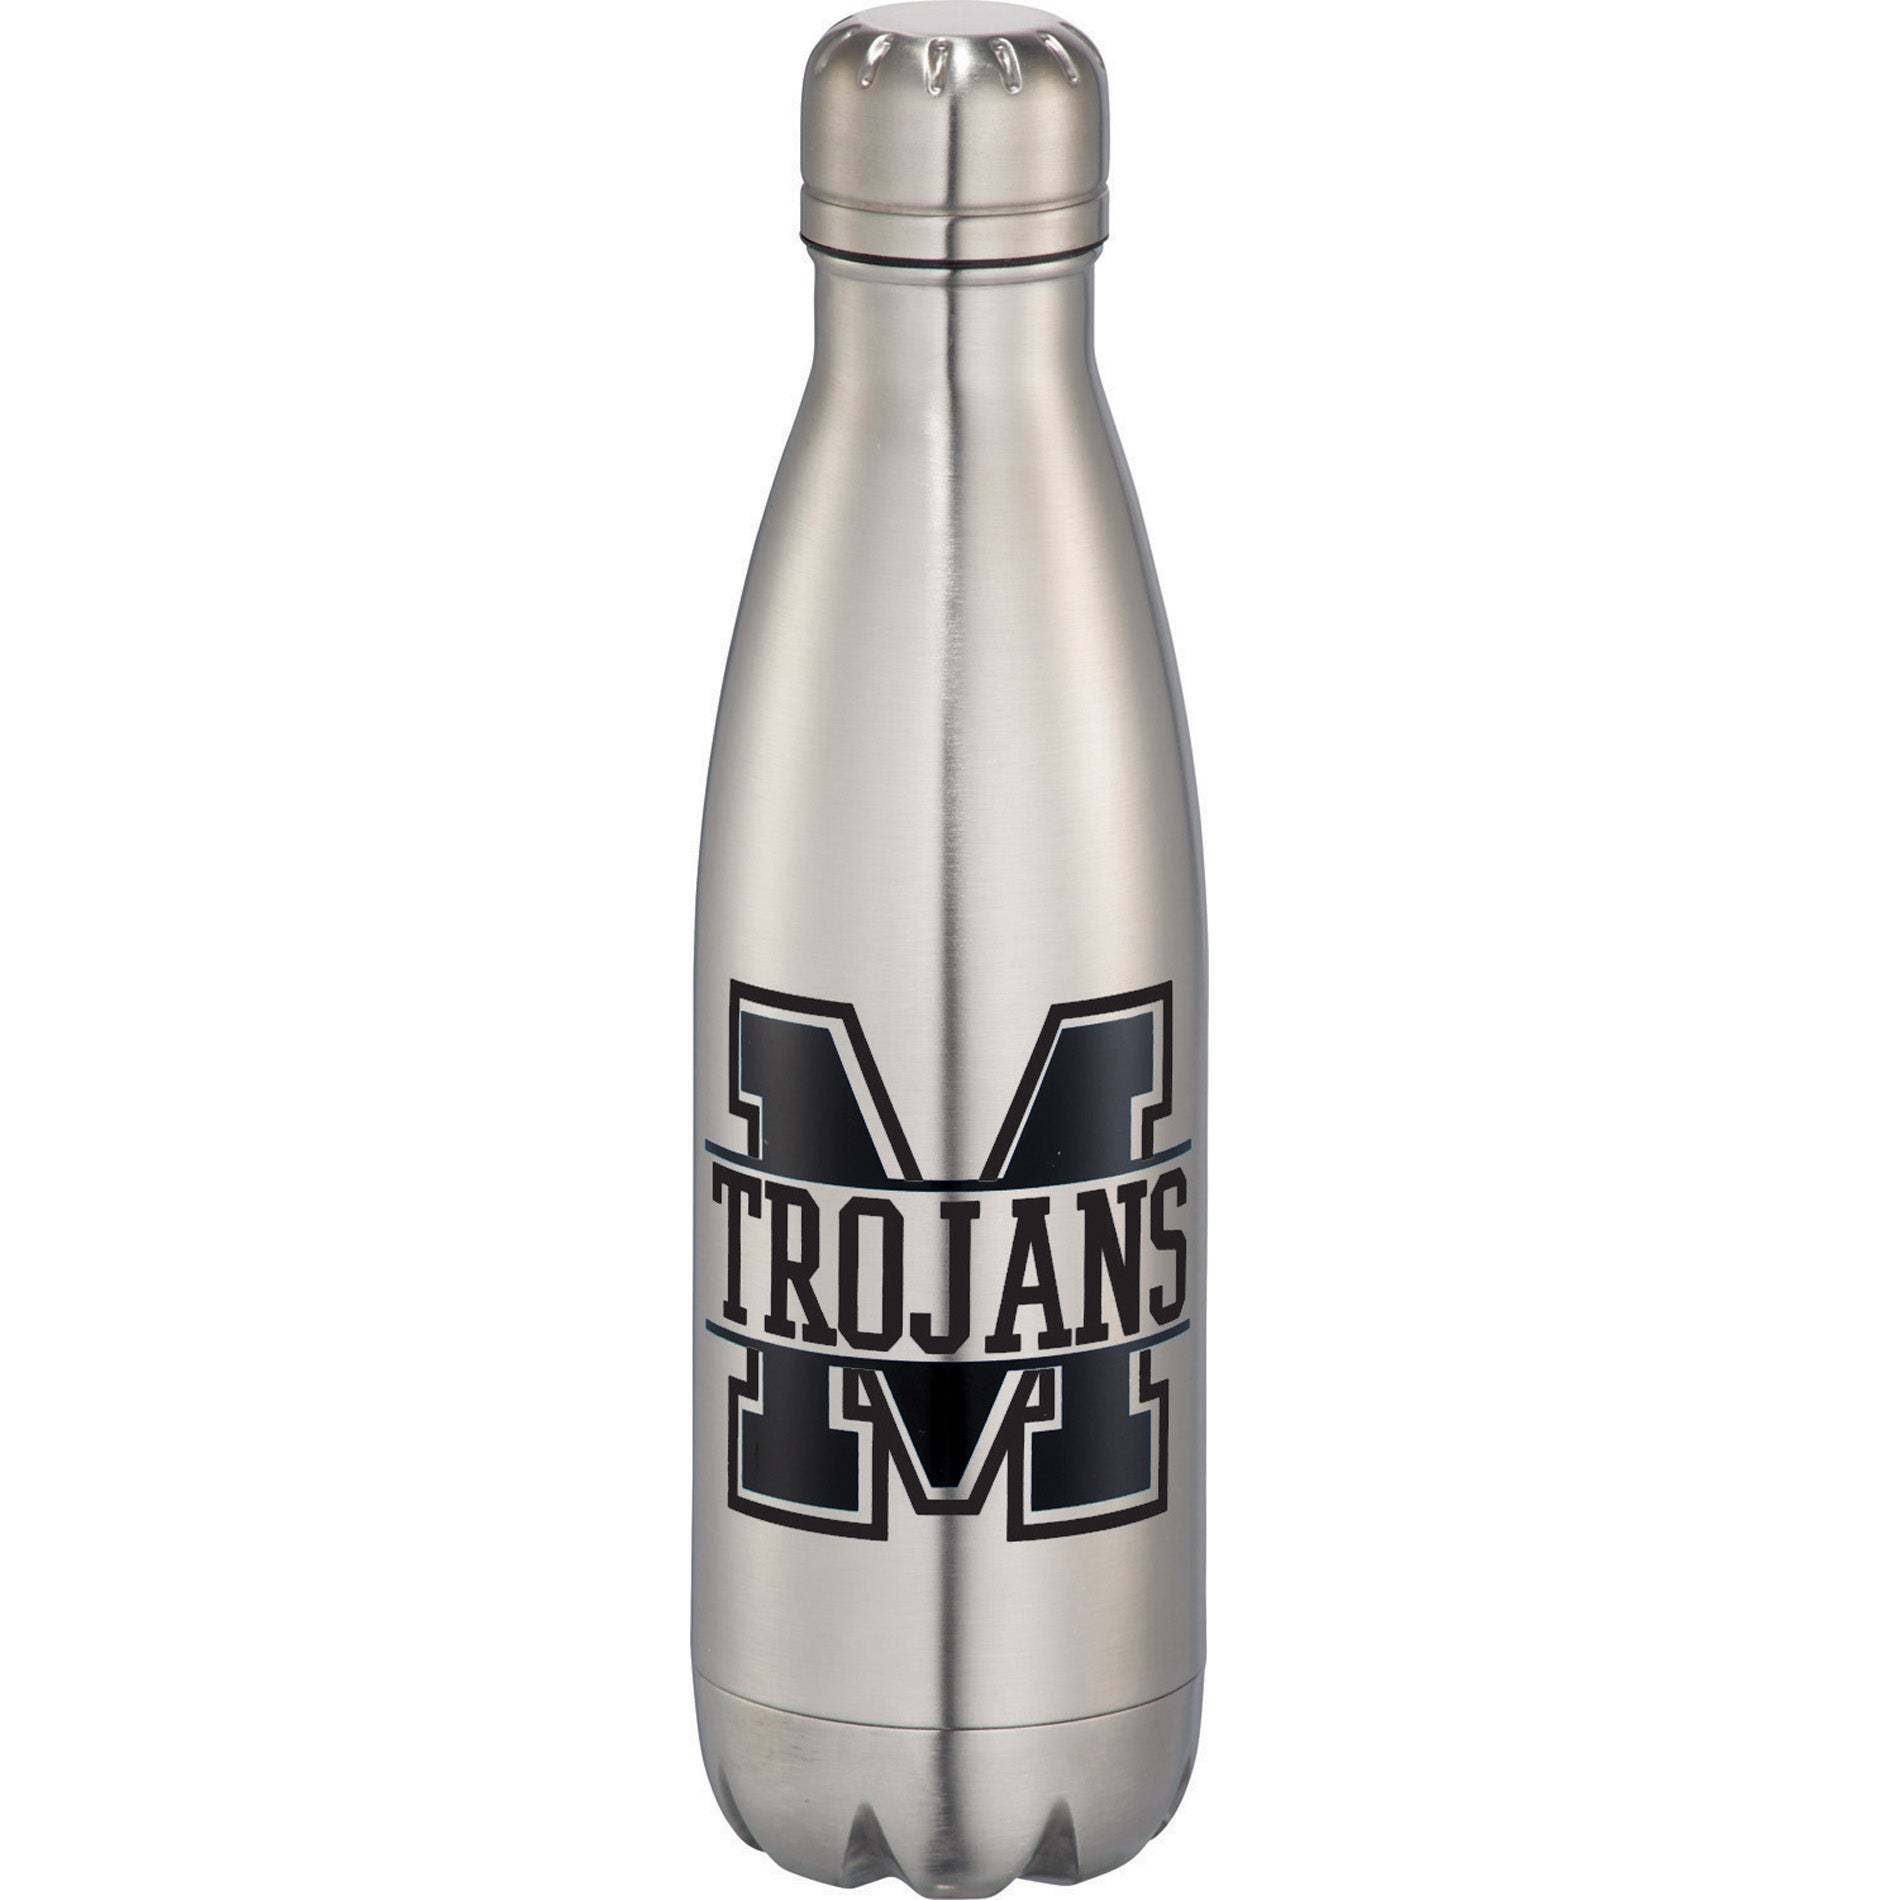 0734513a55 LEEDS COPPER VACUUM INSULATED BOTTLE 17OZ - ID Apparel